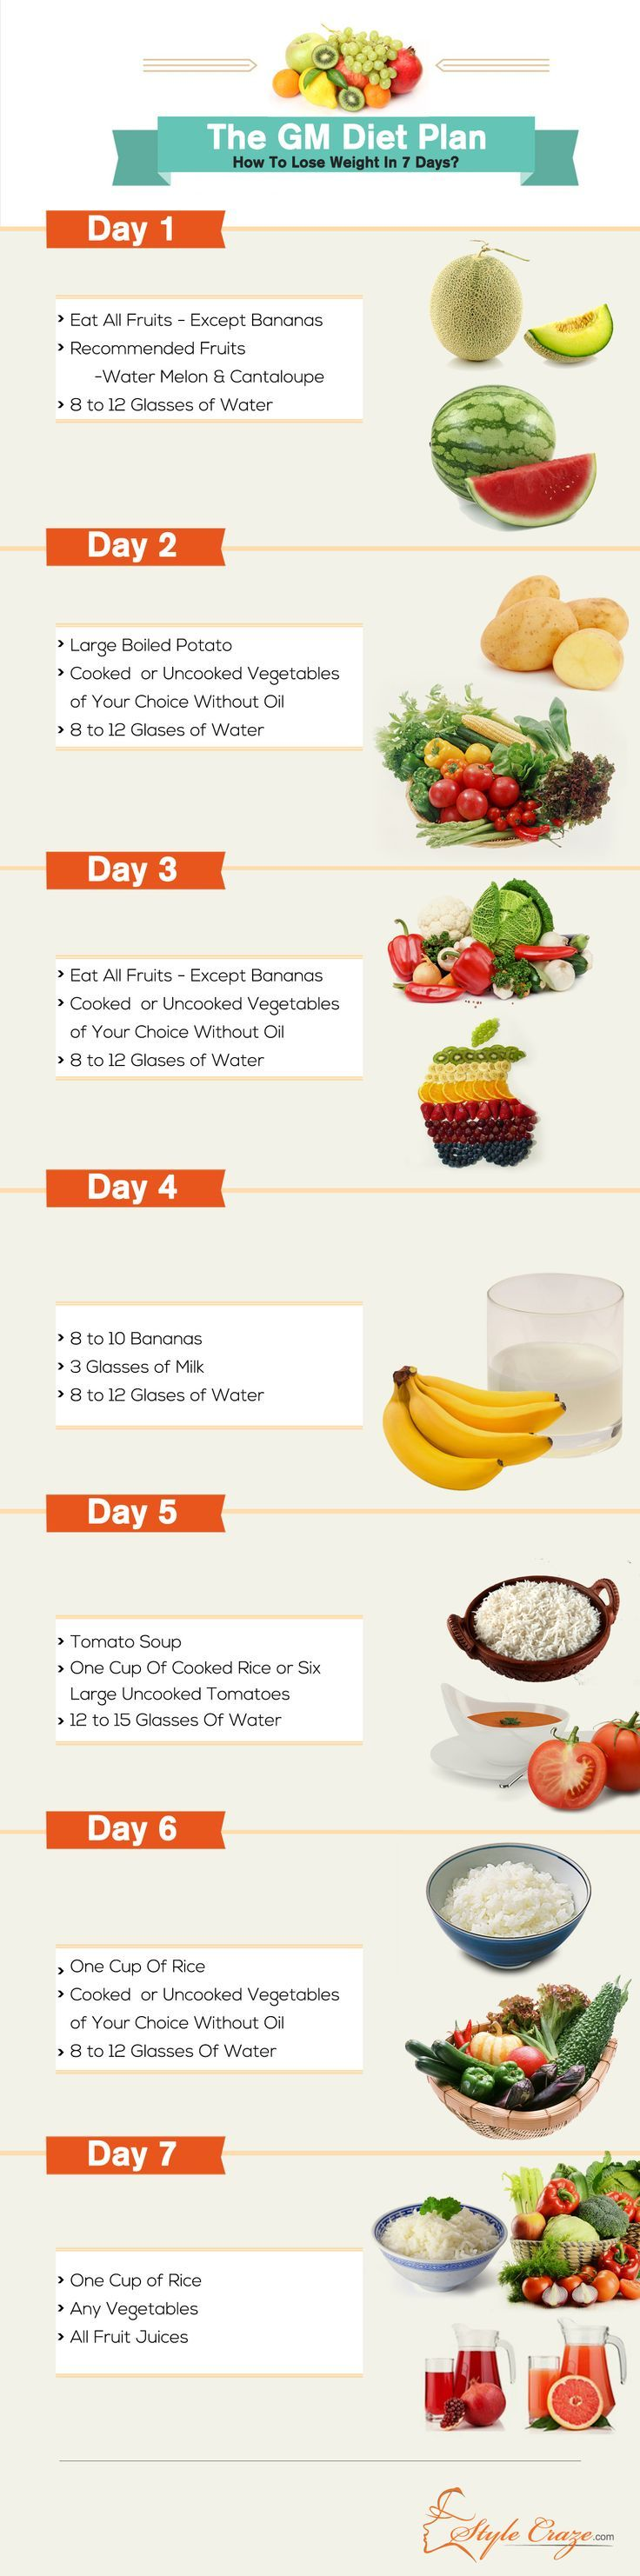 The GM Diet Plan: How To Lose Weight In 7 Days? http://megastoon.com/ Click the website link to check out how I lost 21 pounds in 1 month.  http://bit.ly/1NODvJi